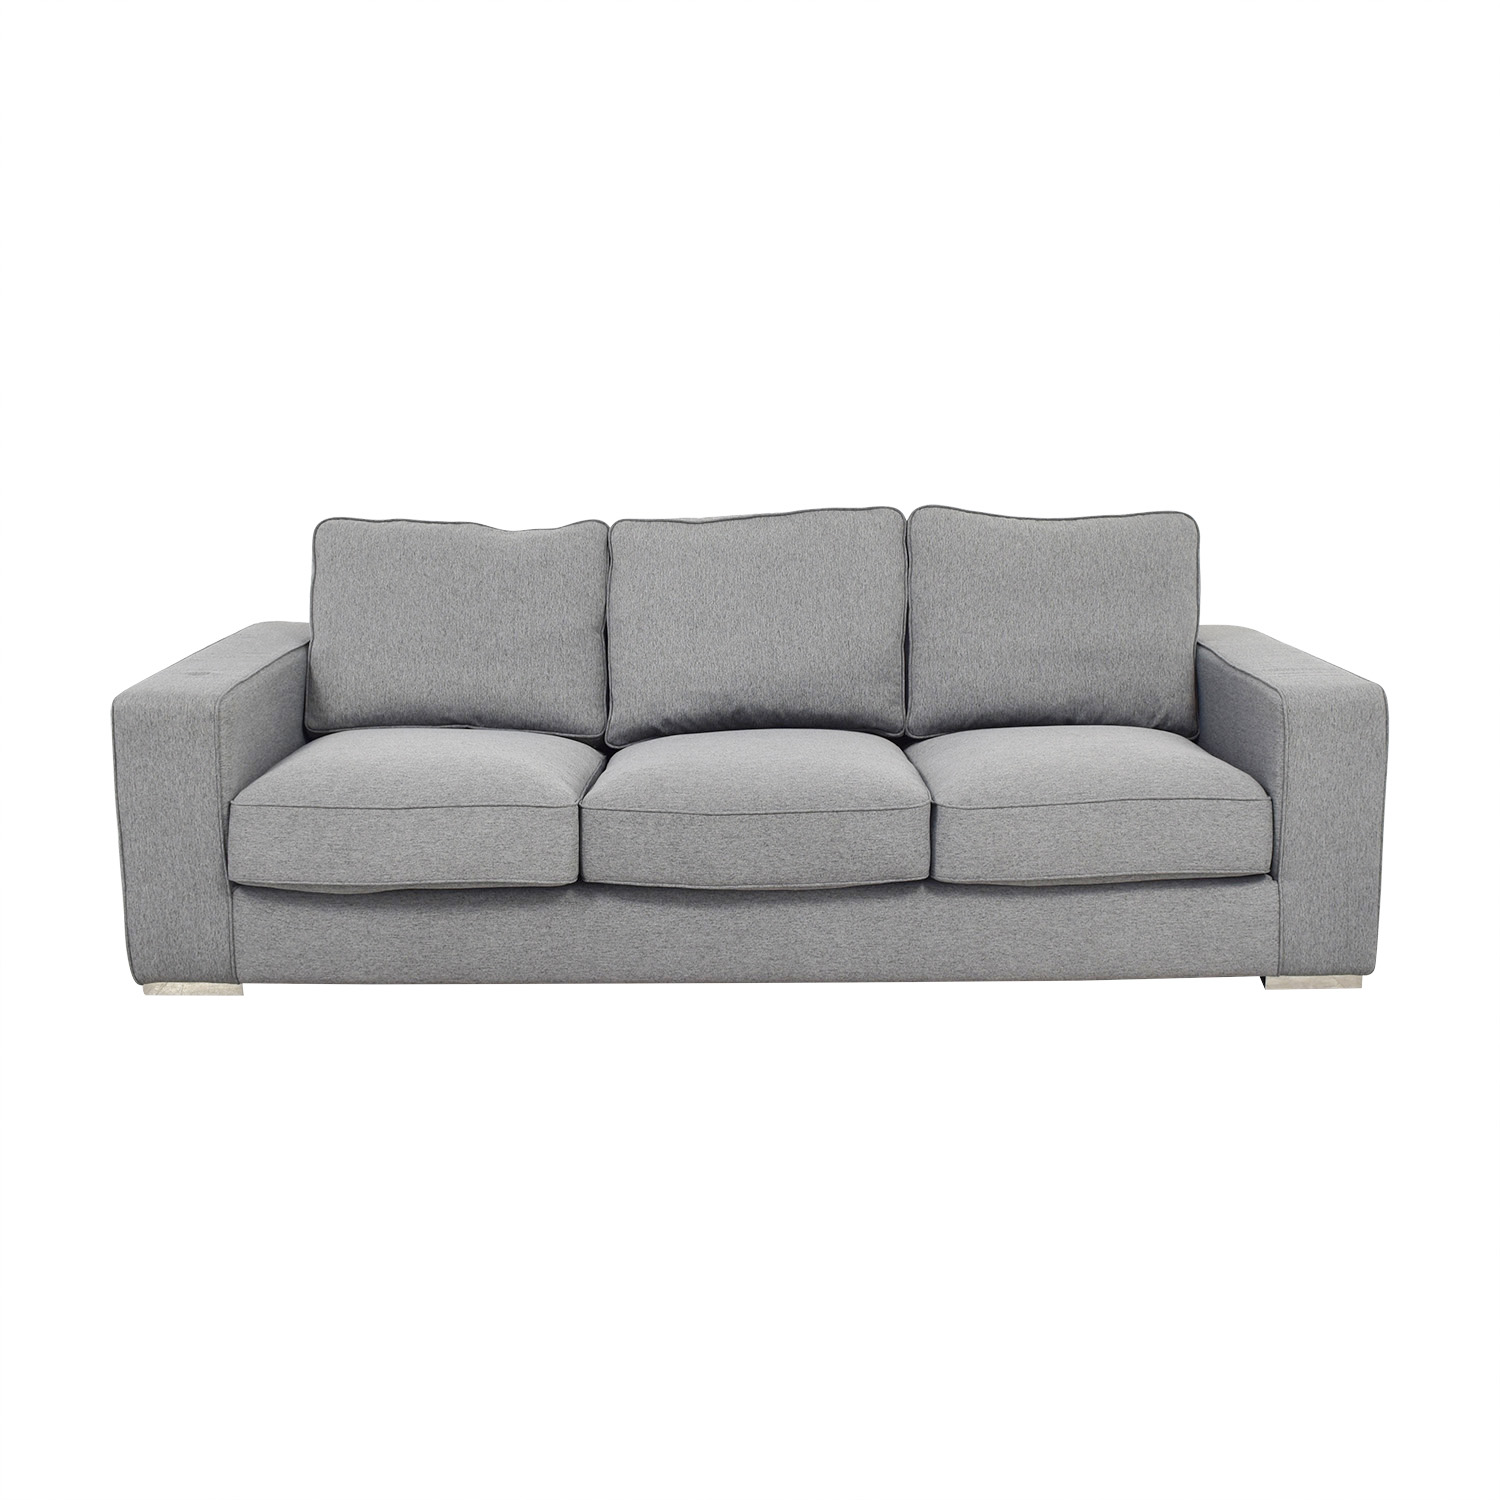 Interior Define Ainsley Grey Three-Cushion Sofa / Classic Sofas